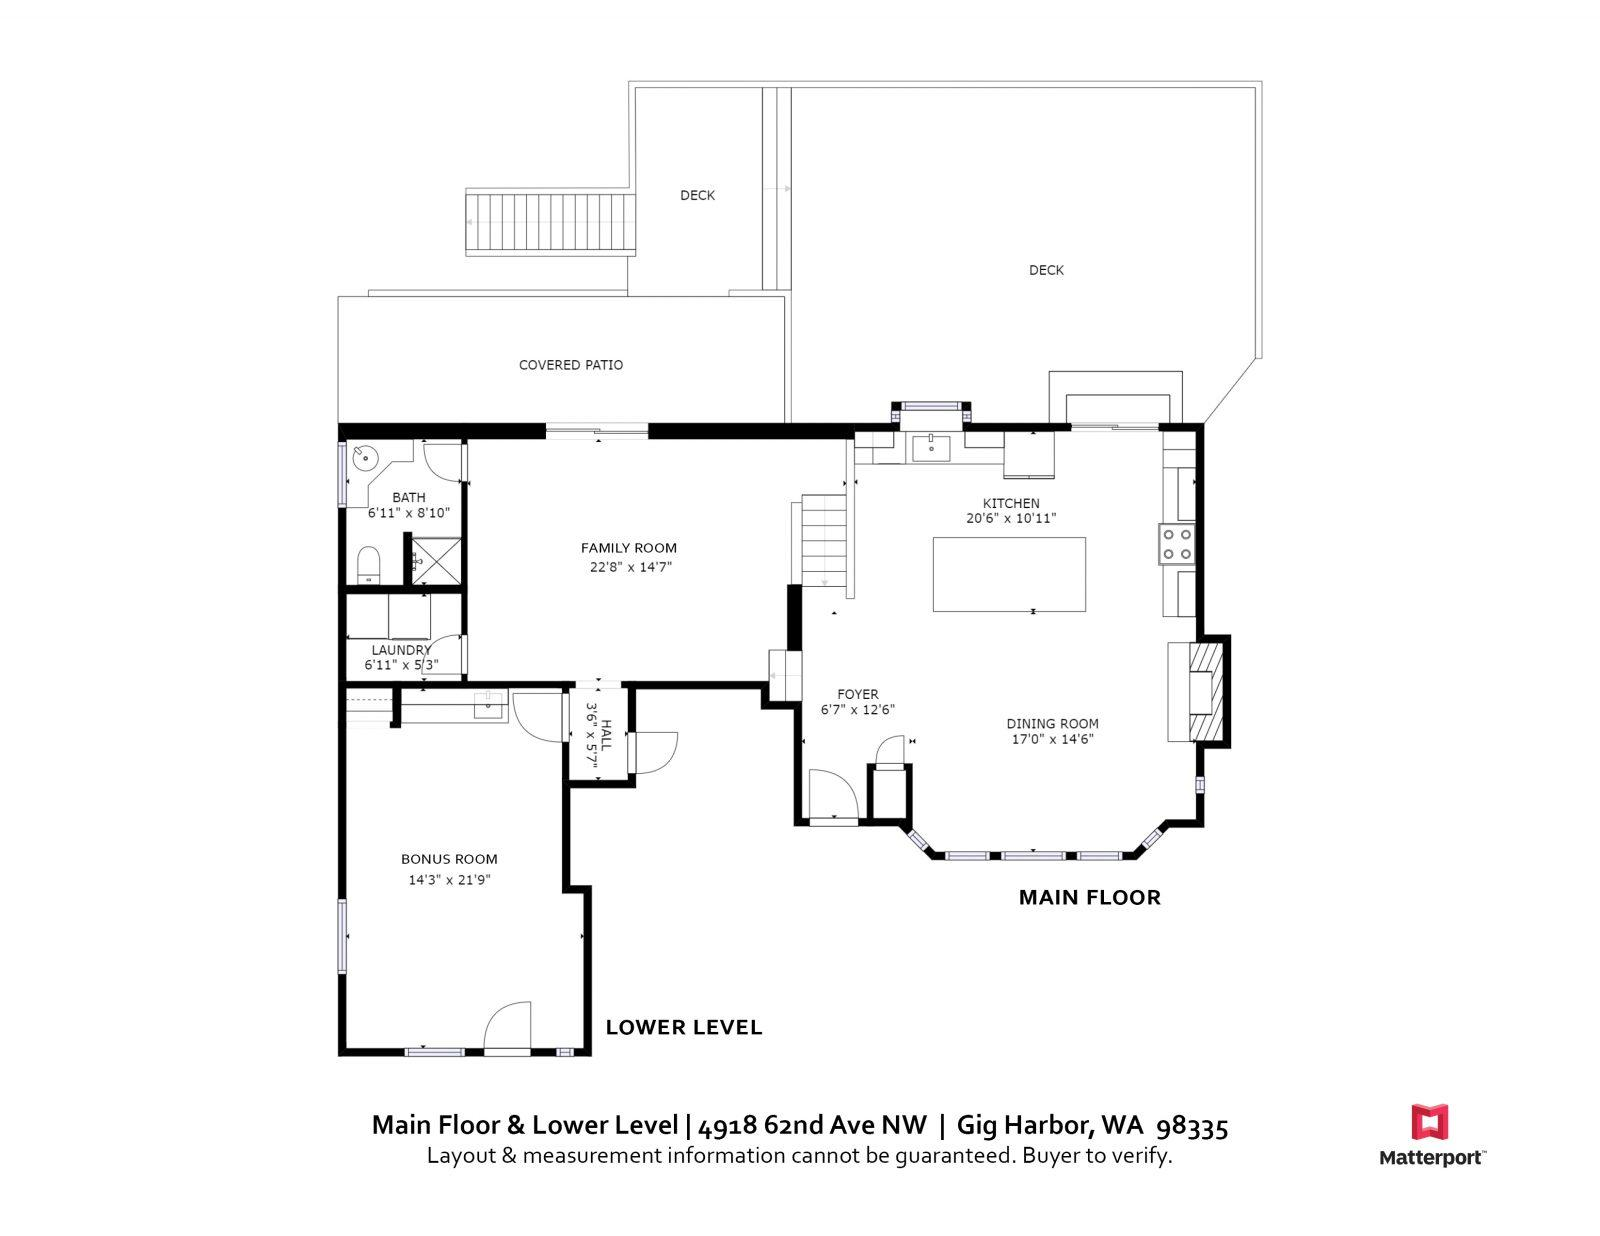 Main Floor & Lower Level    4918 62nd Ave NW